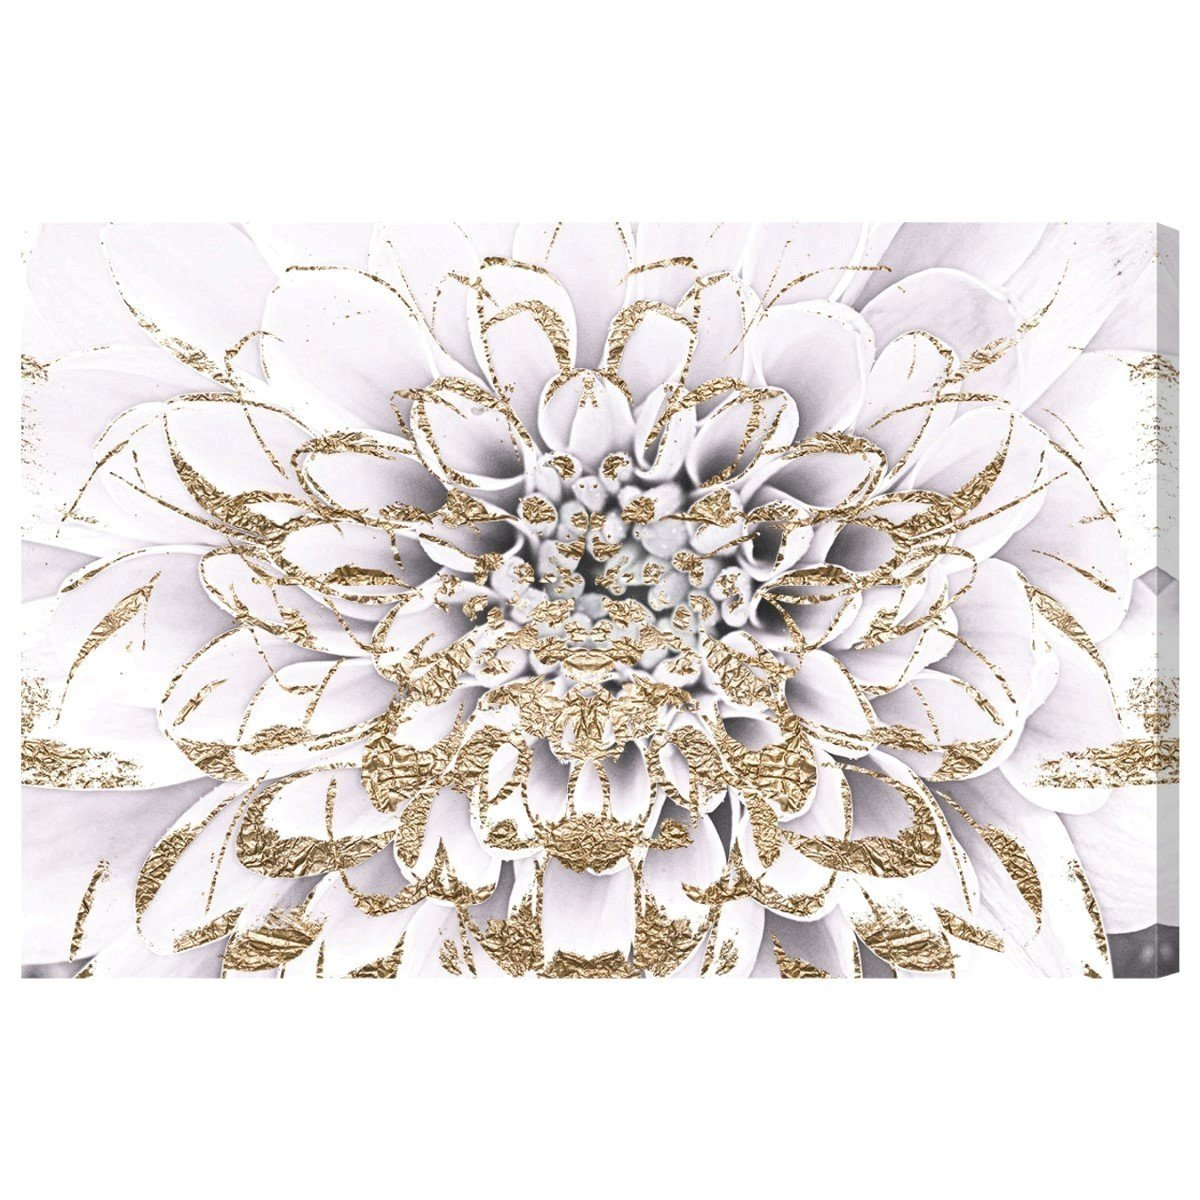 Floralia Blanc by Oliver Gal | Modern Premium Canvas Art Print. The Floral and Botanical Wall Art Decor Collection. 36x24 inch, Gold